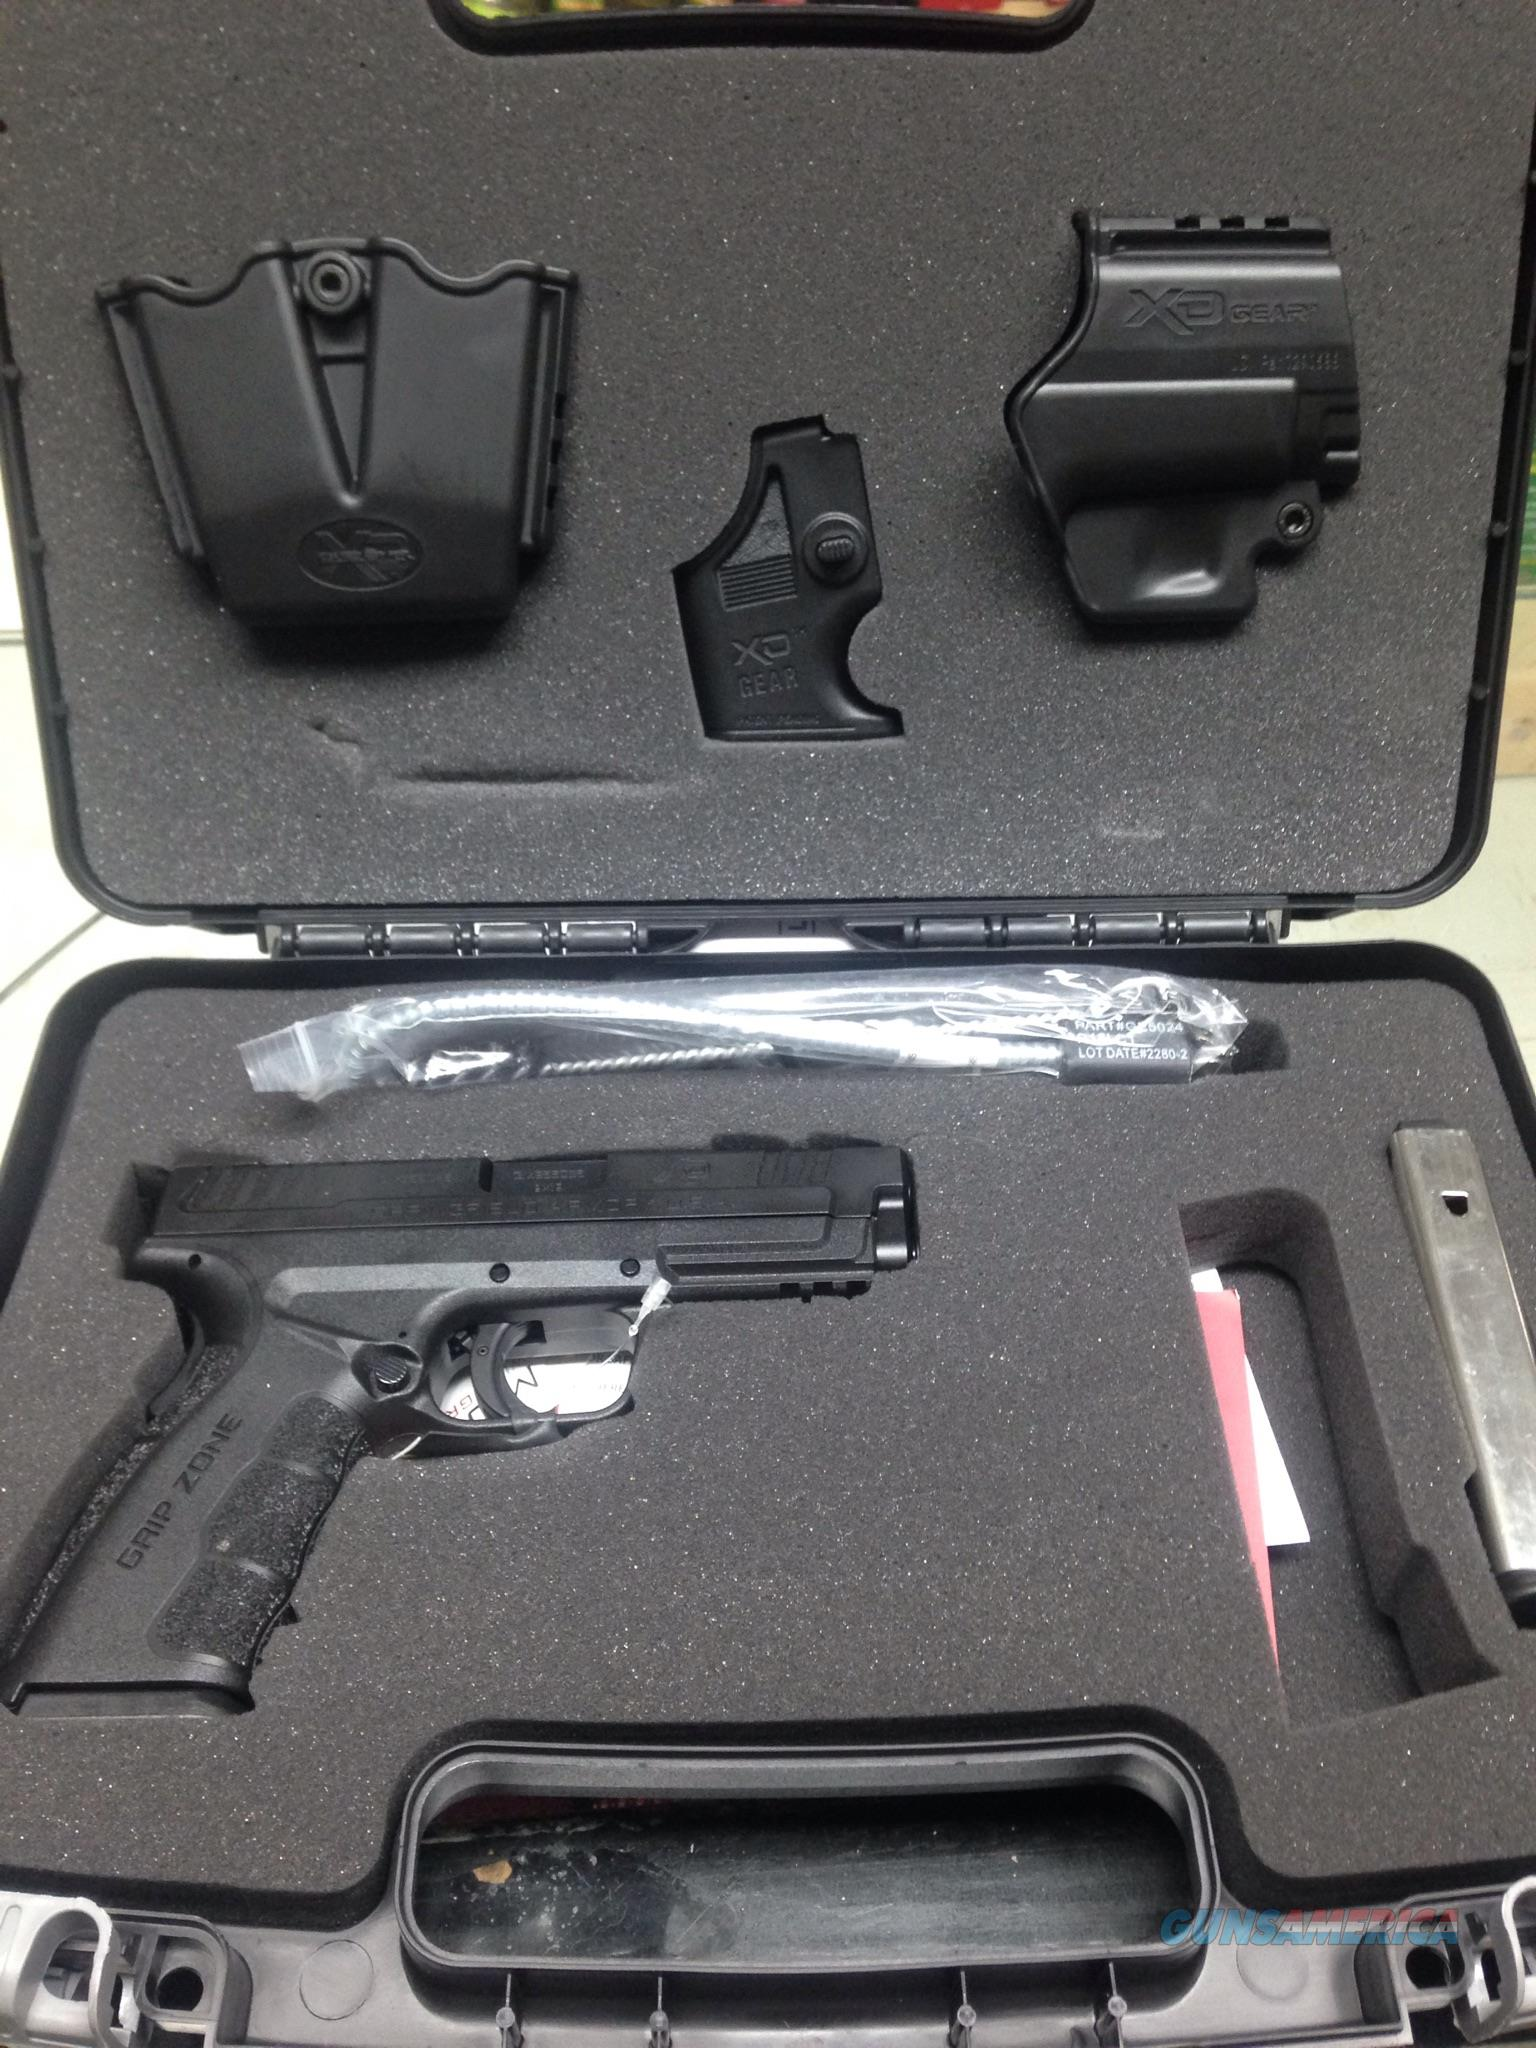 Springfield XD 9mm mod 2 with holsters and case  Guns > Pistols > Springfield Armory Pistols > XD (eXtreme Duty)